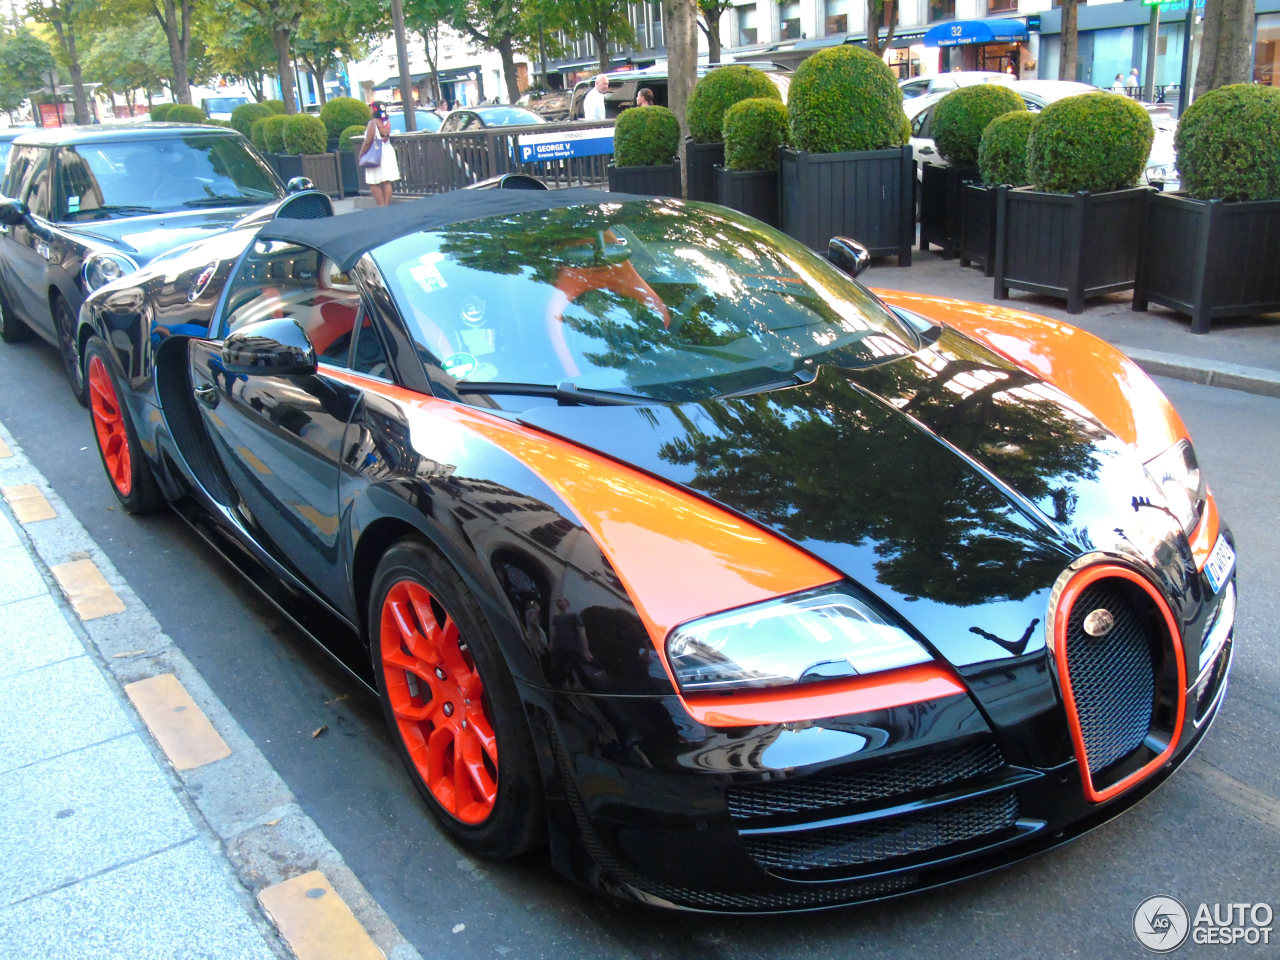 bugatti veyron 16 4 grand sport vitesse world record car edition 14 july 20. Black Bedroom Furniture Sets. Home Design Ideas